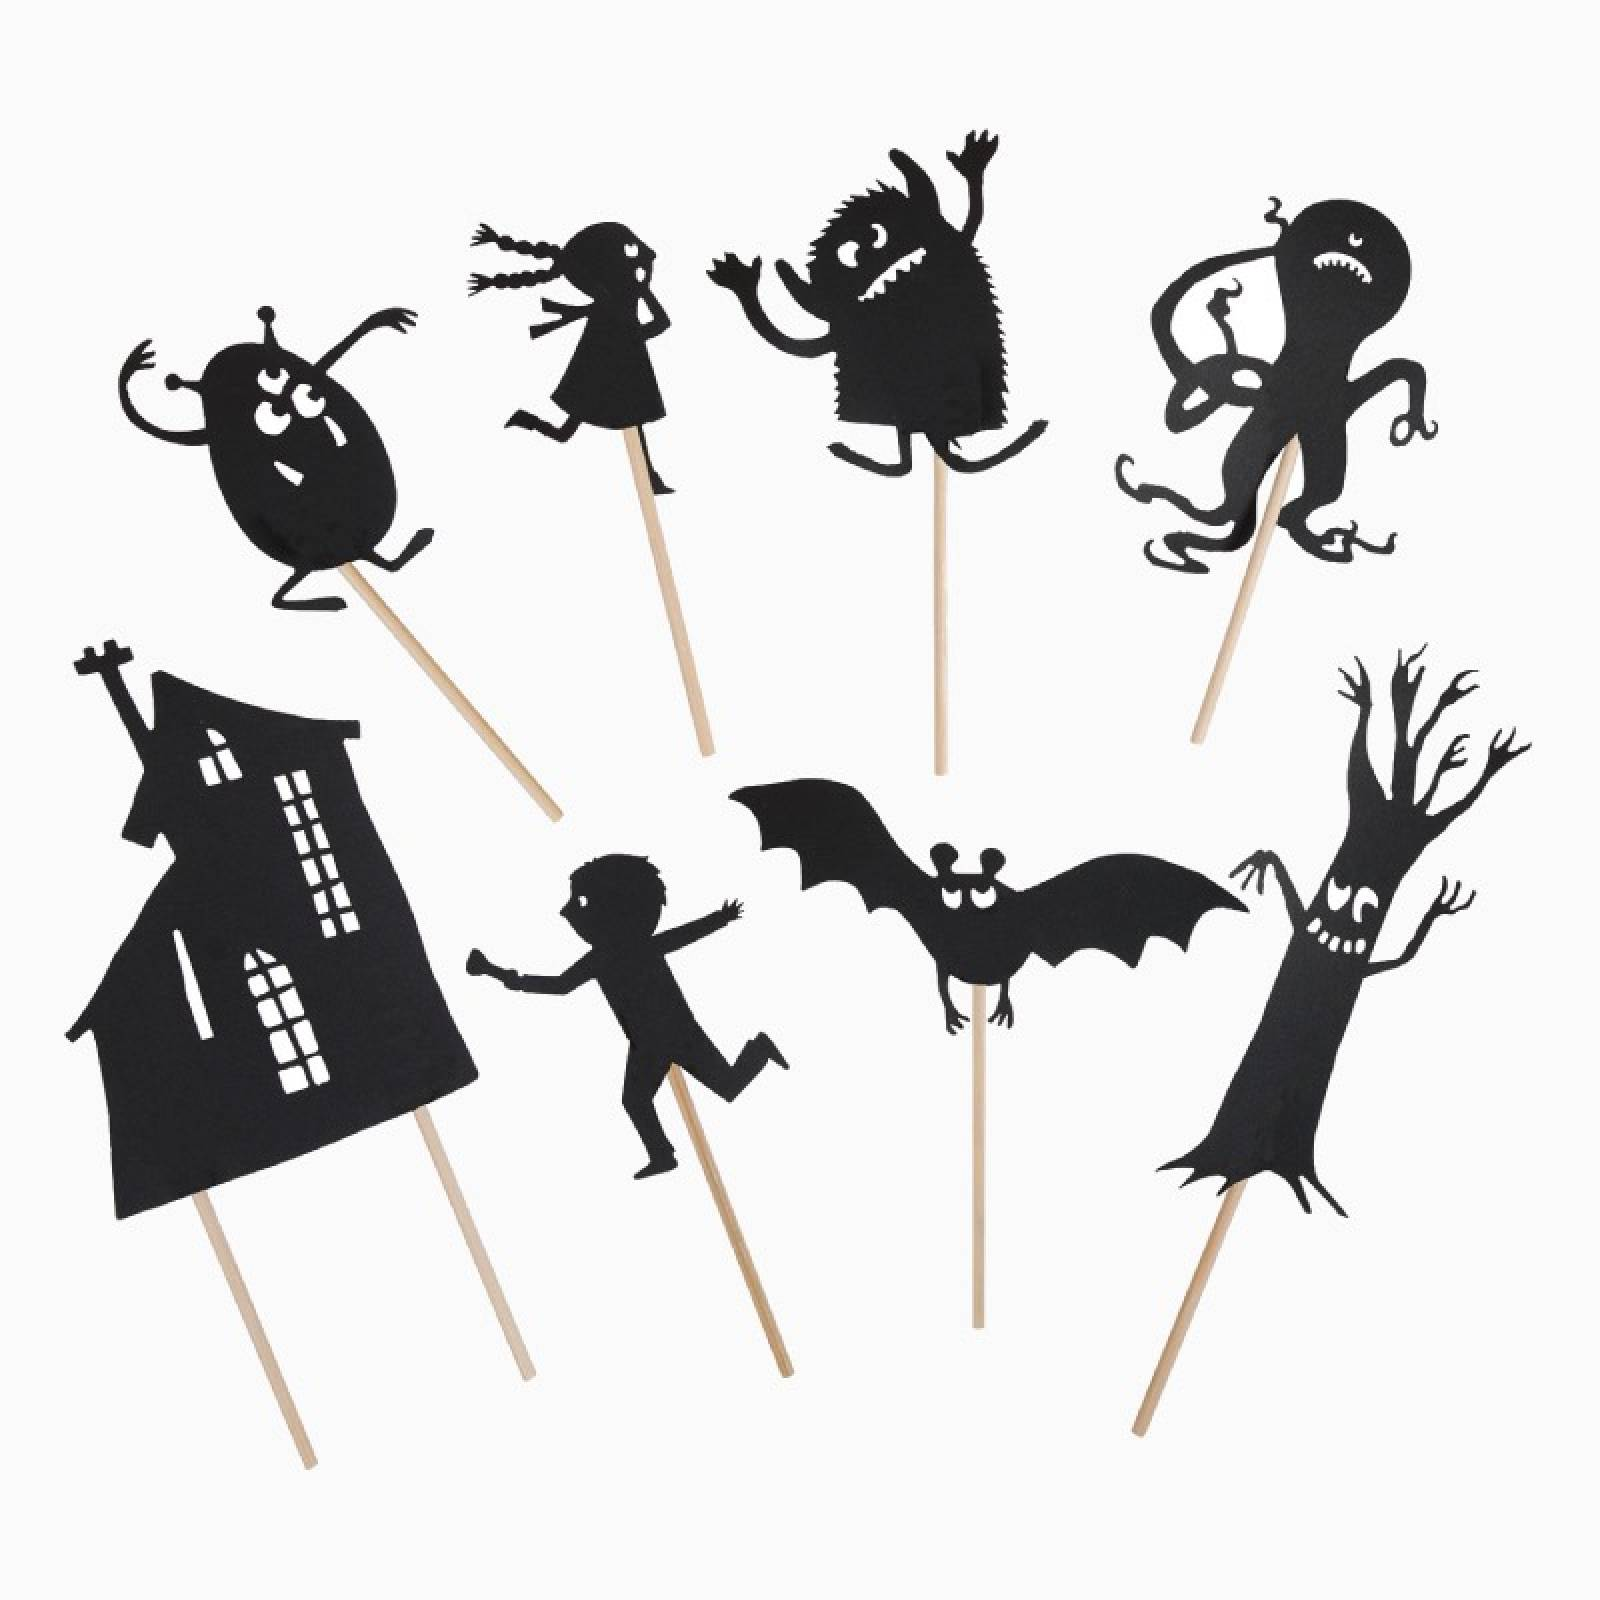 Scary Glow In The Dark Night Time Shadow Puppets 3+